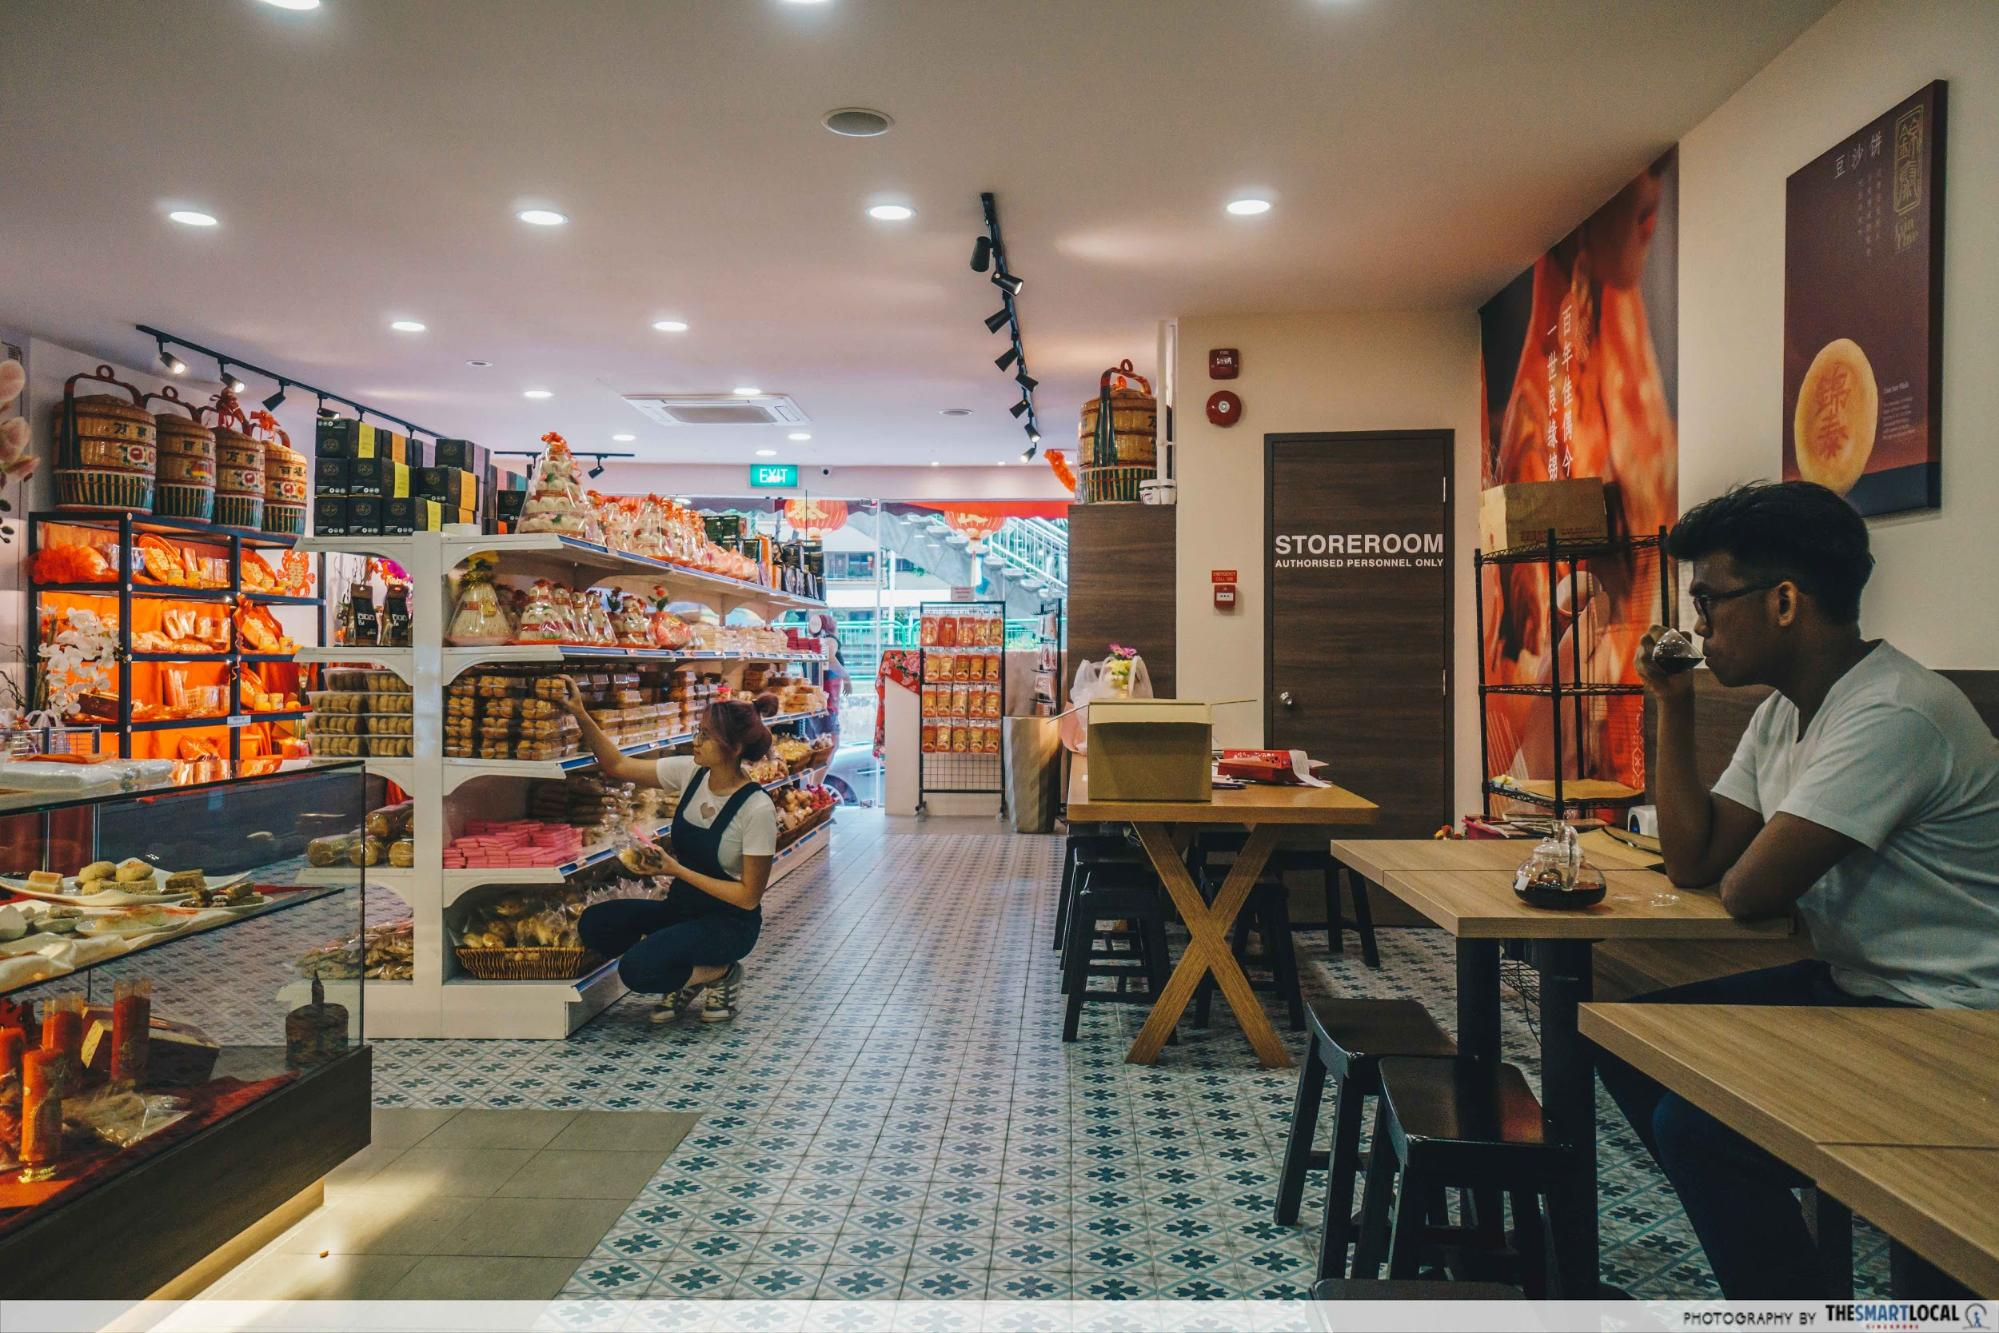 b8120dffc2c89 6 Oldest Shops In Singapore In Their OG Locations From As Early As ...